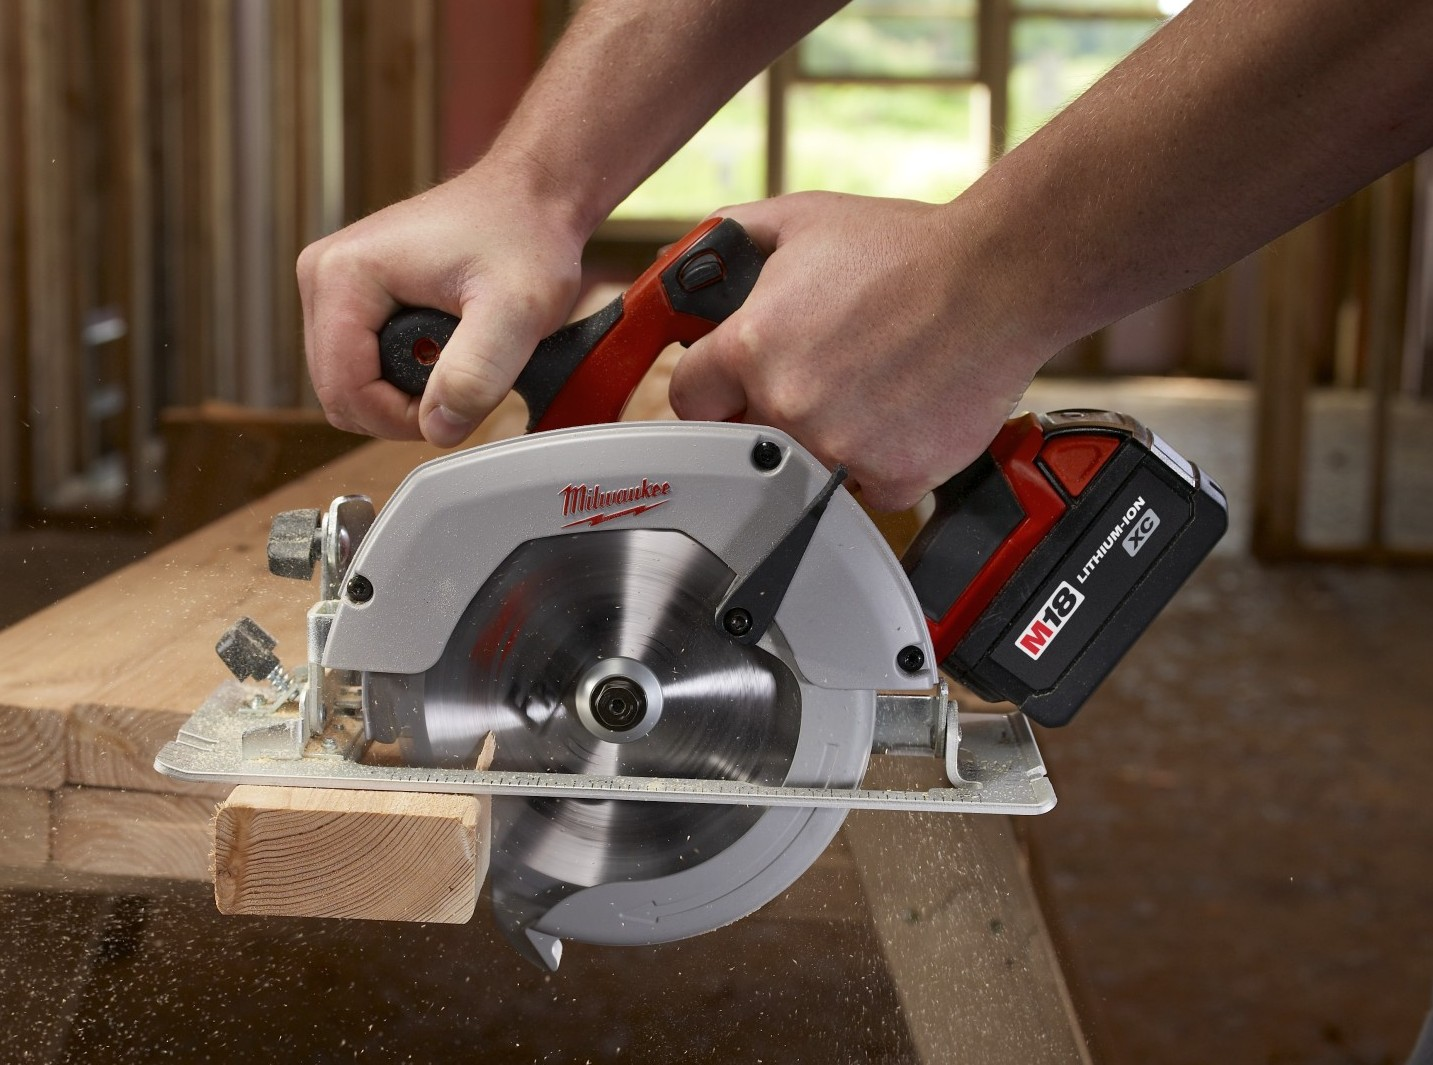 How to select a circular saw pro construction guide how to select a circular saw keyboard keysfo Images